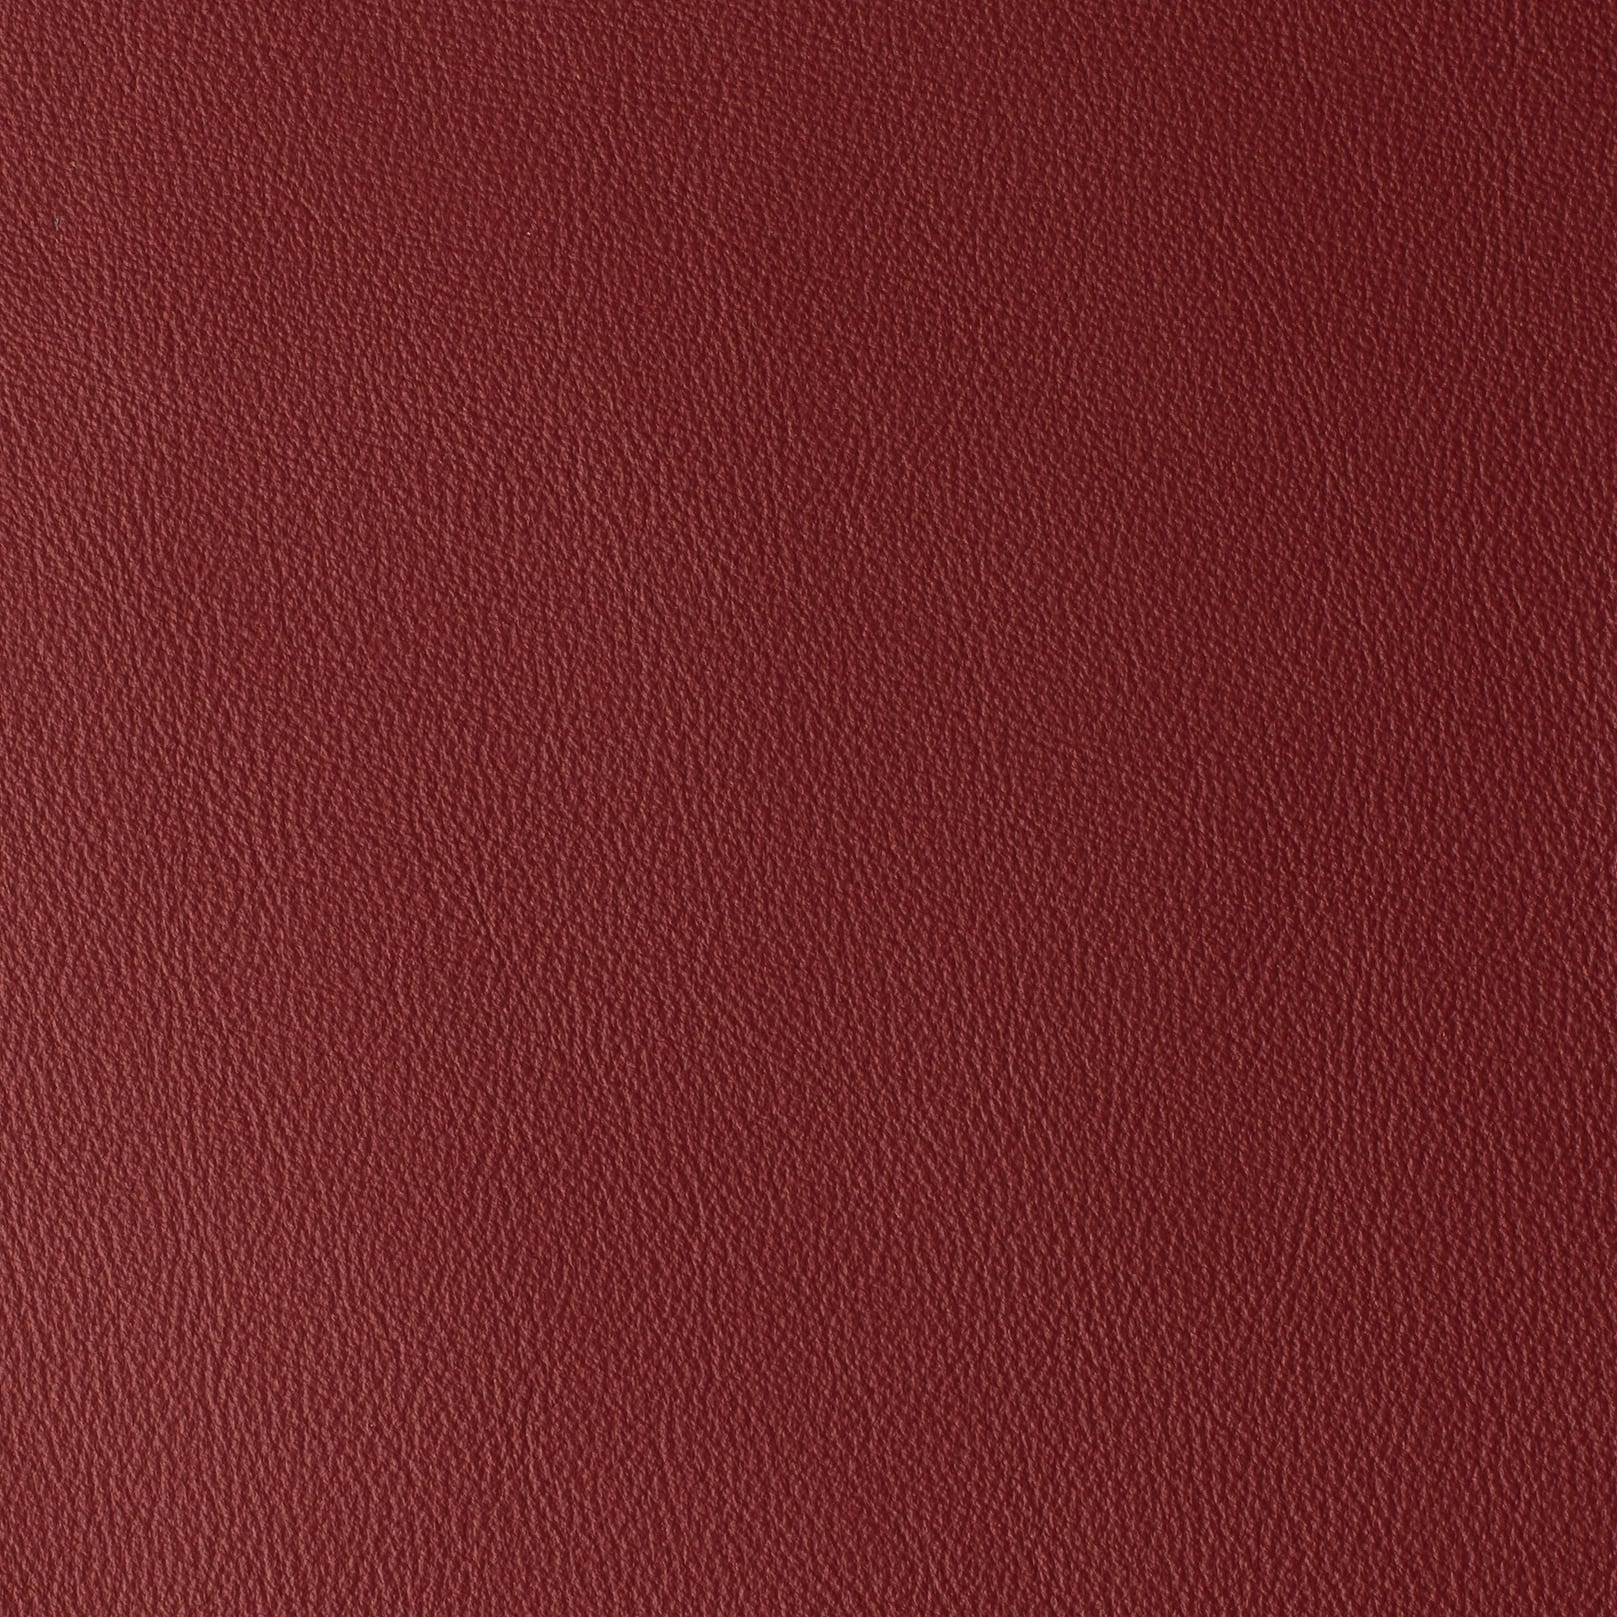 LAGUNA CHERRY 08615 - fabric finishes